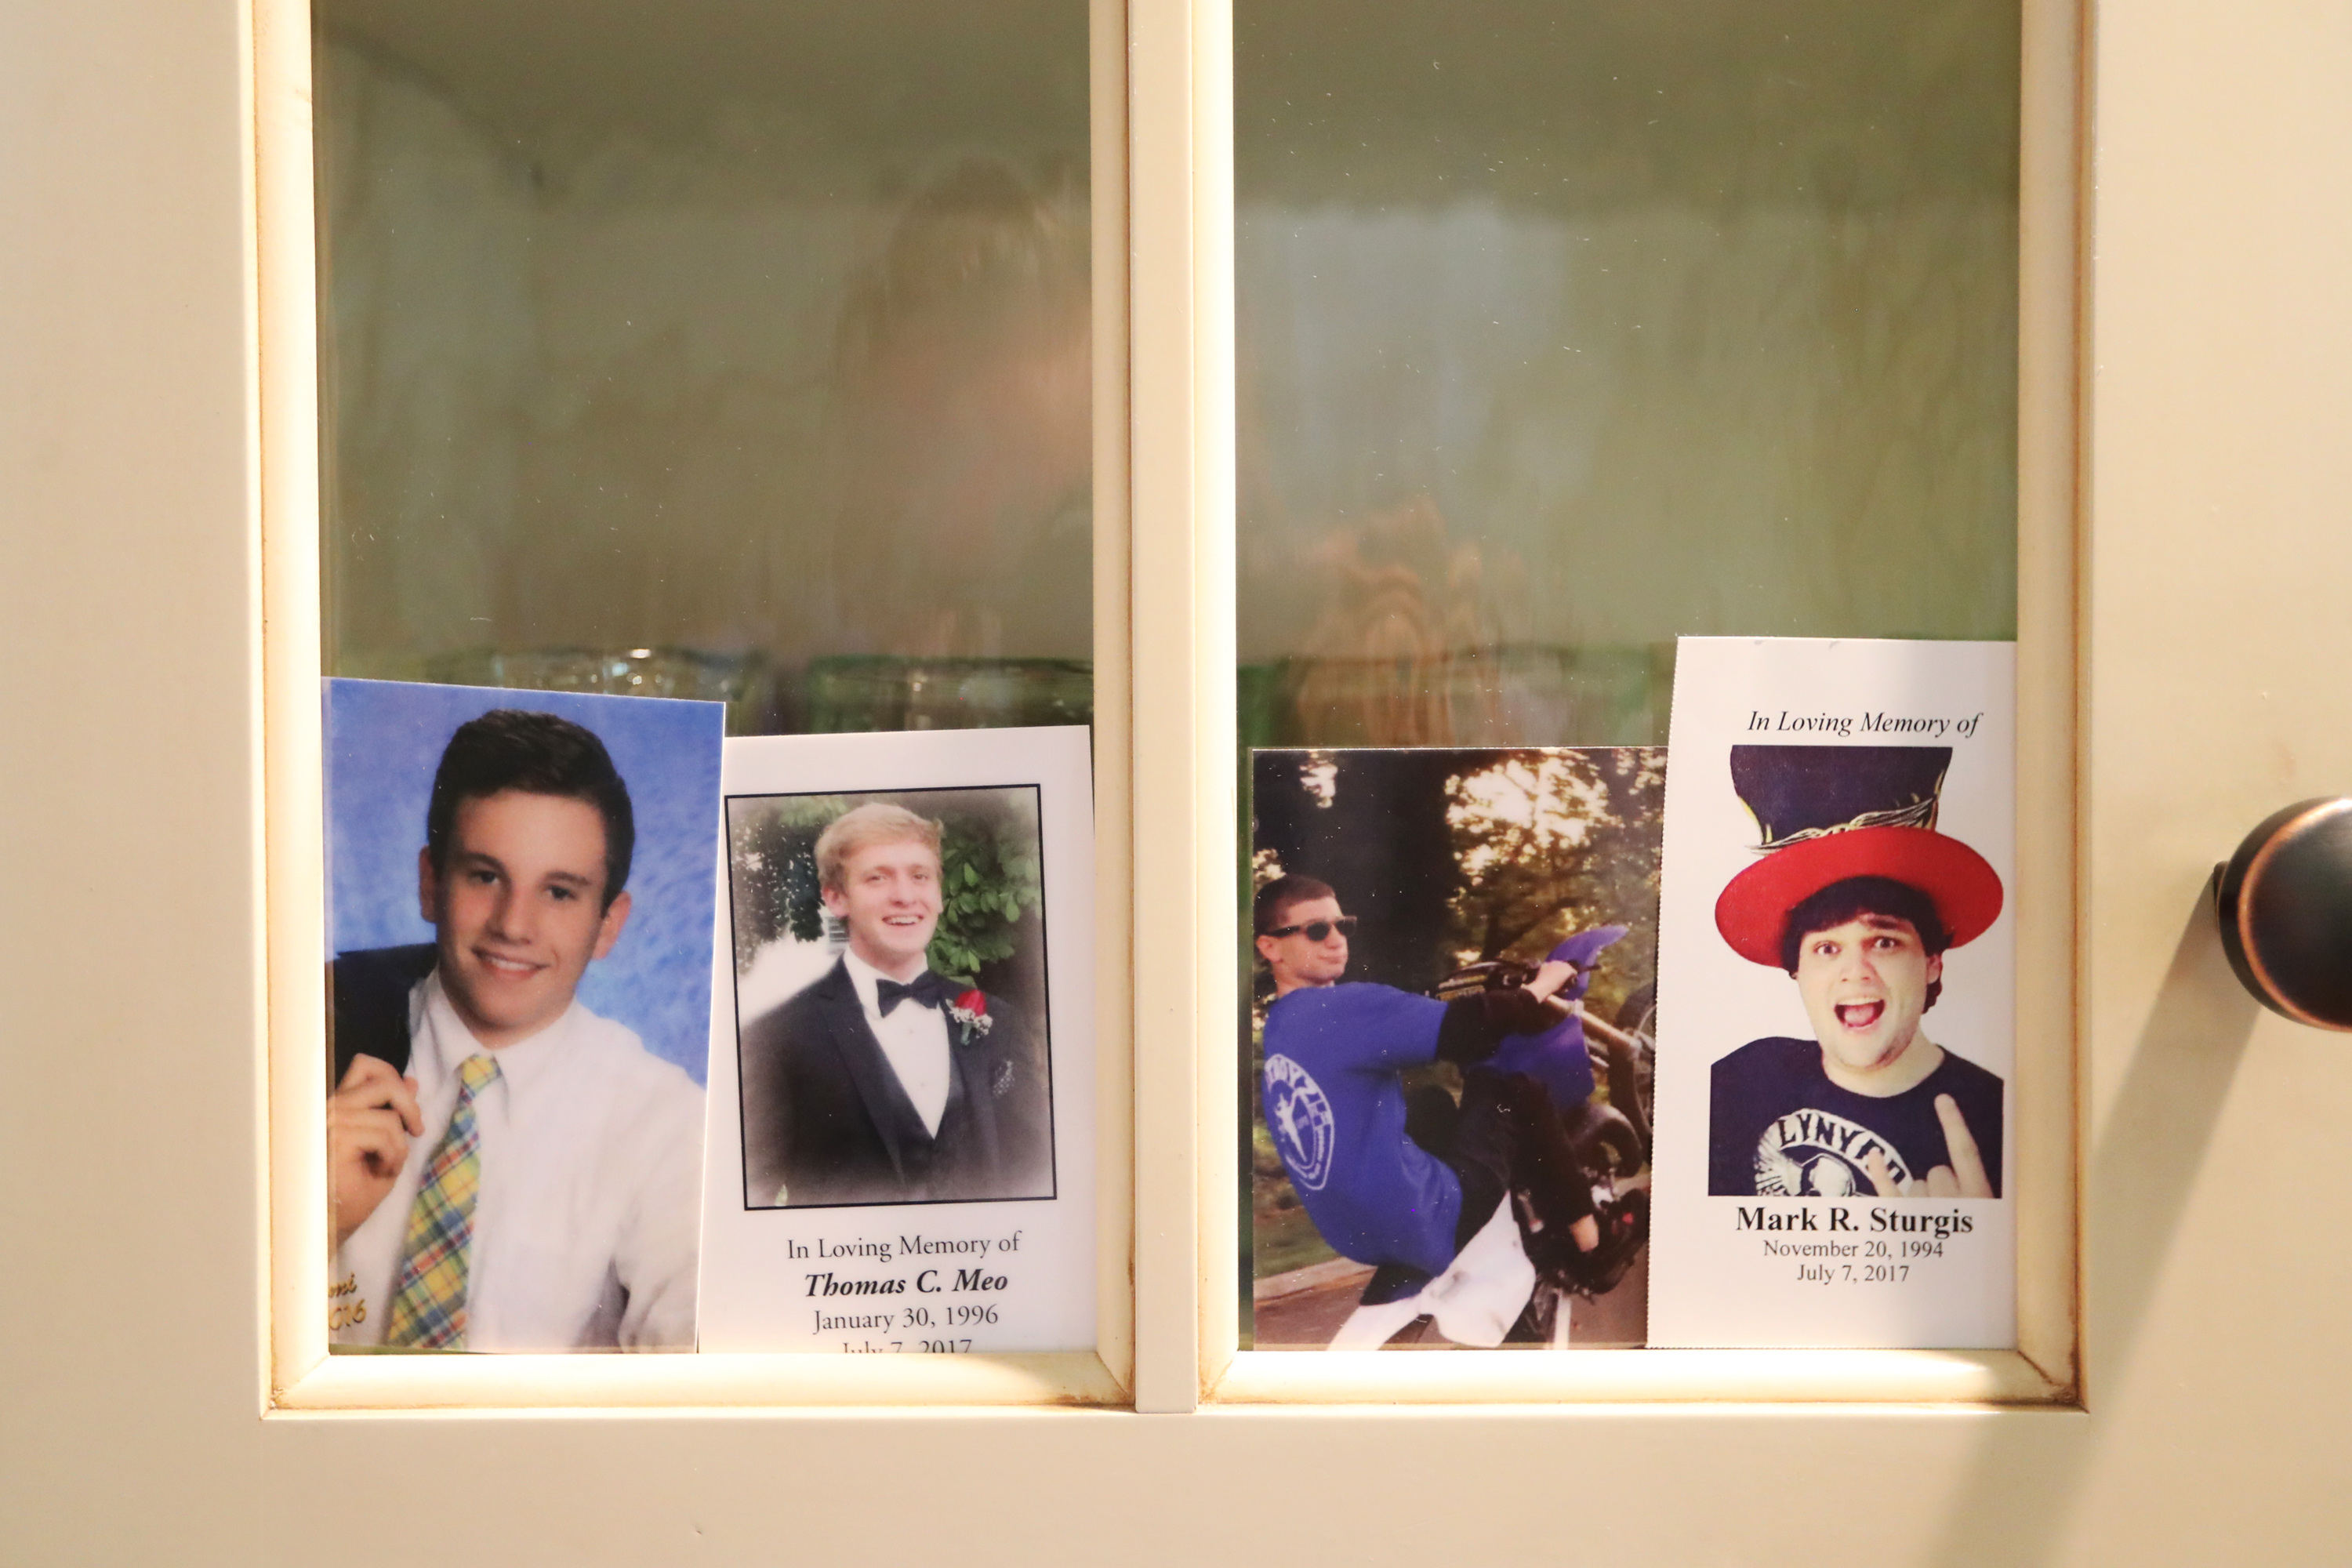 (L-R) Four photos of Jimi Patrick, Tom Meo, Dean Finocchiaro, and Mark Sturgis are placed in a kitchen cabinet window in the home of the Patricks, nearing the anniversary of the July 2017 murders of the four young men in Bucks County. DAVID SWANSON / Staff Photographer